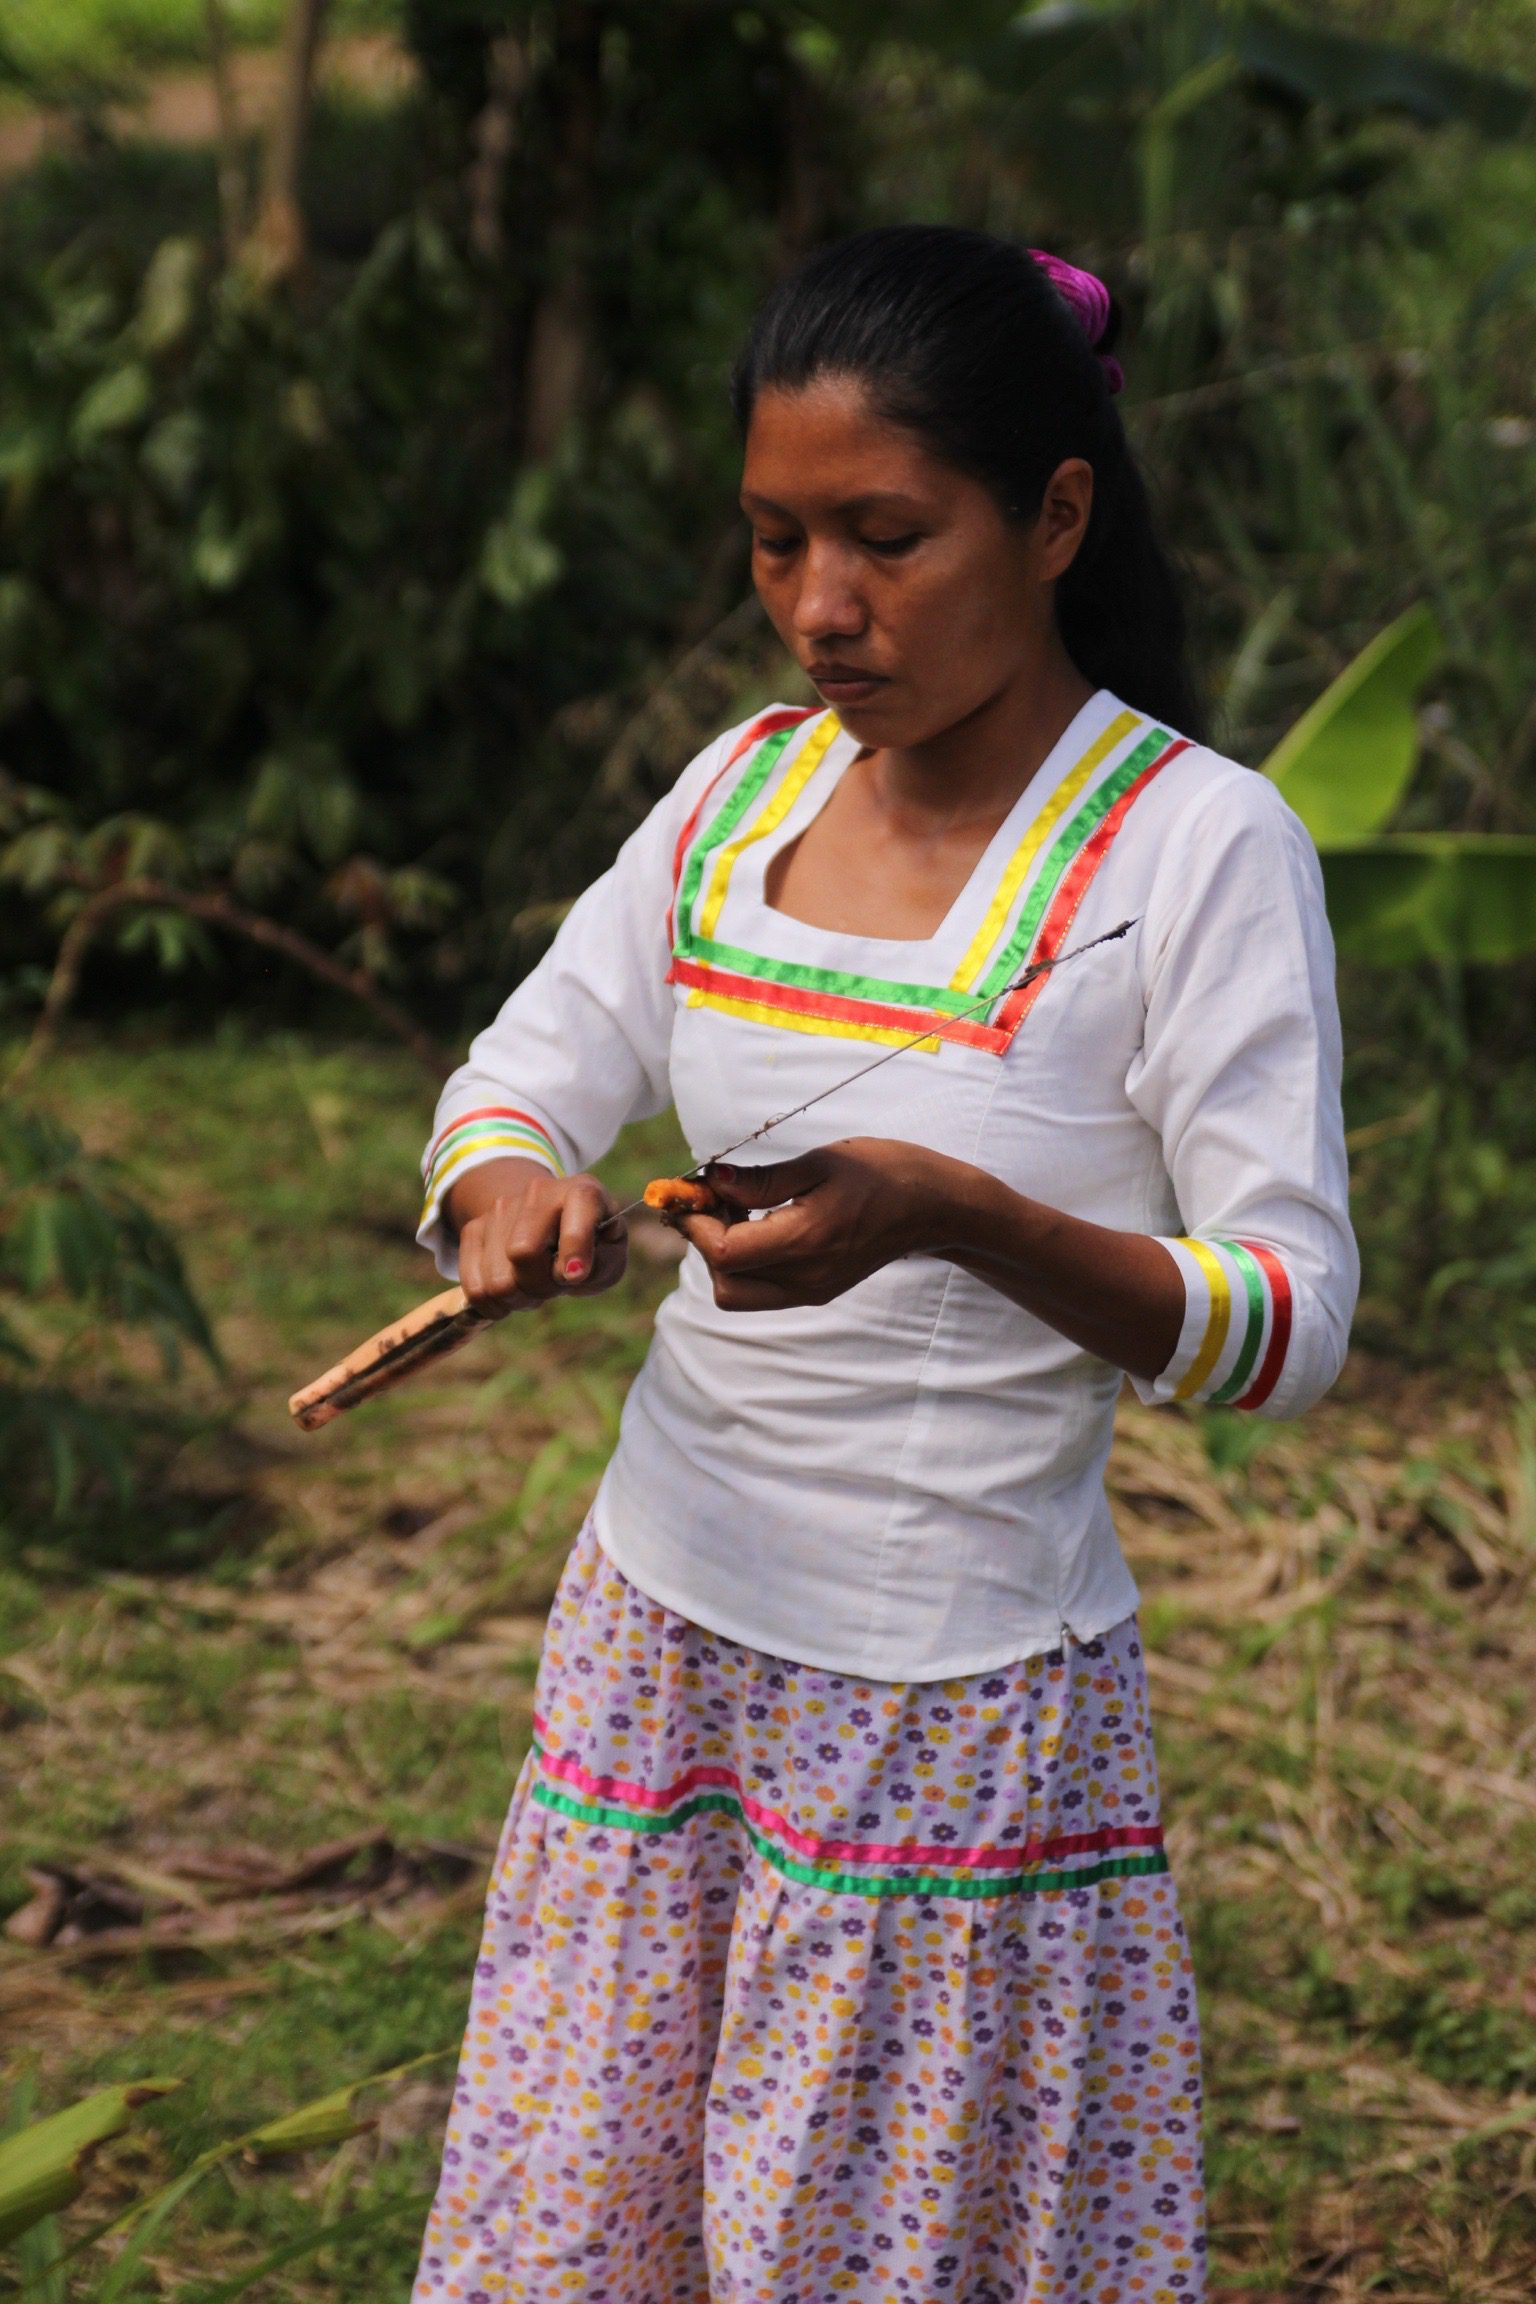 Tribal woman carving with knife in Ecuador Amazon